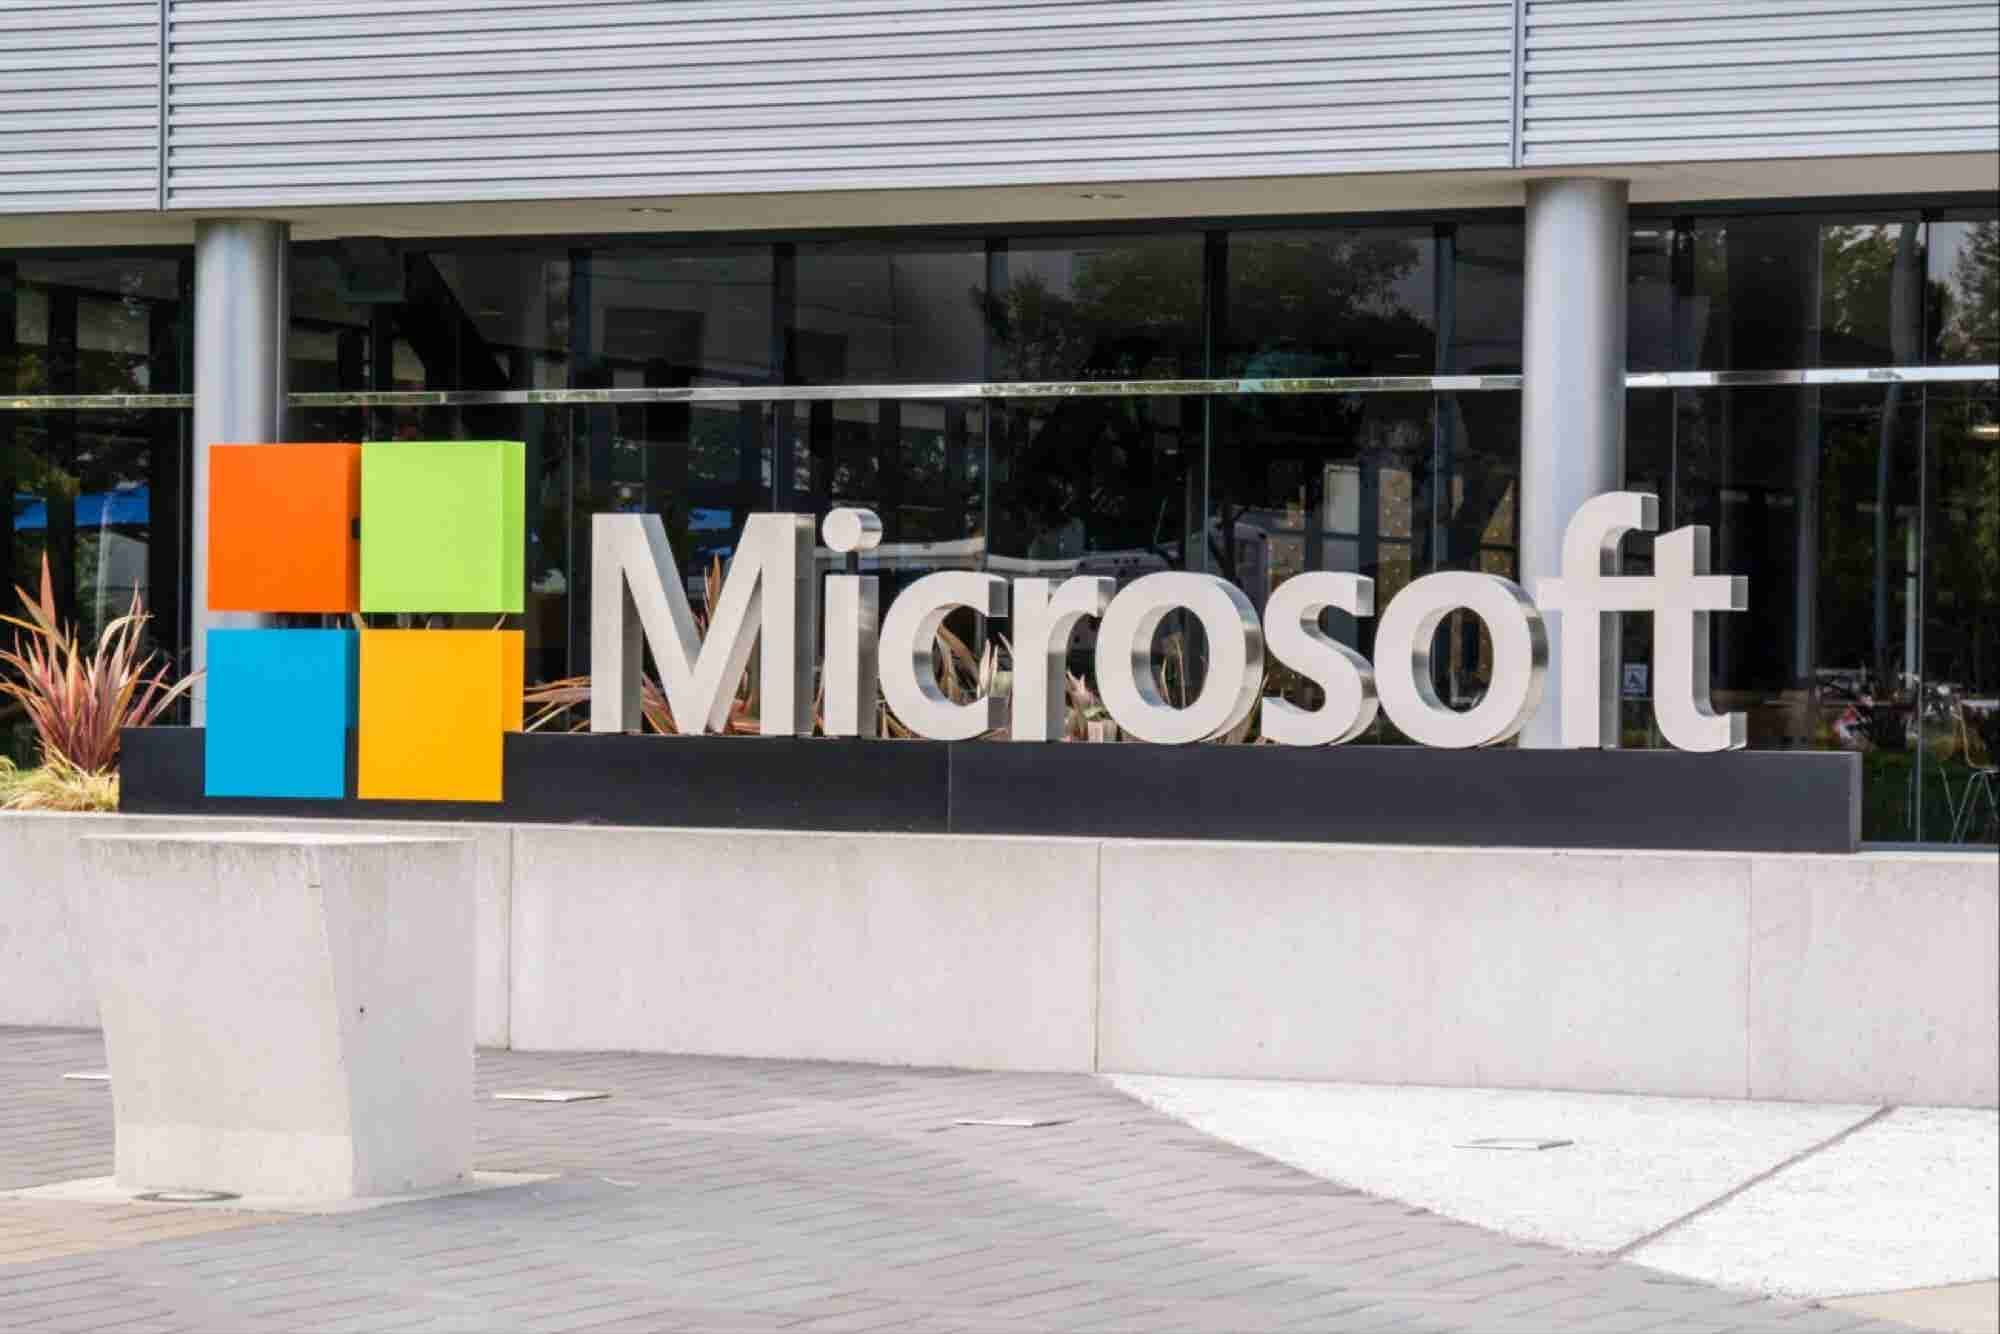 Microsoft Drops Lawsuit in Secrecy Case the Government Probably Didn't Want You to Know About